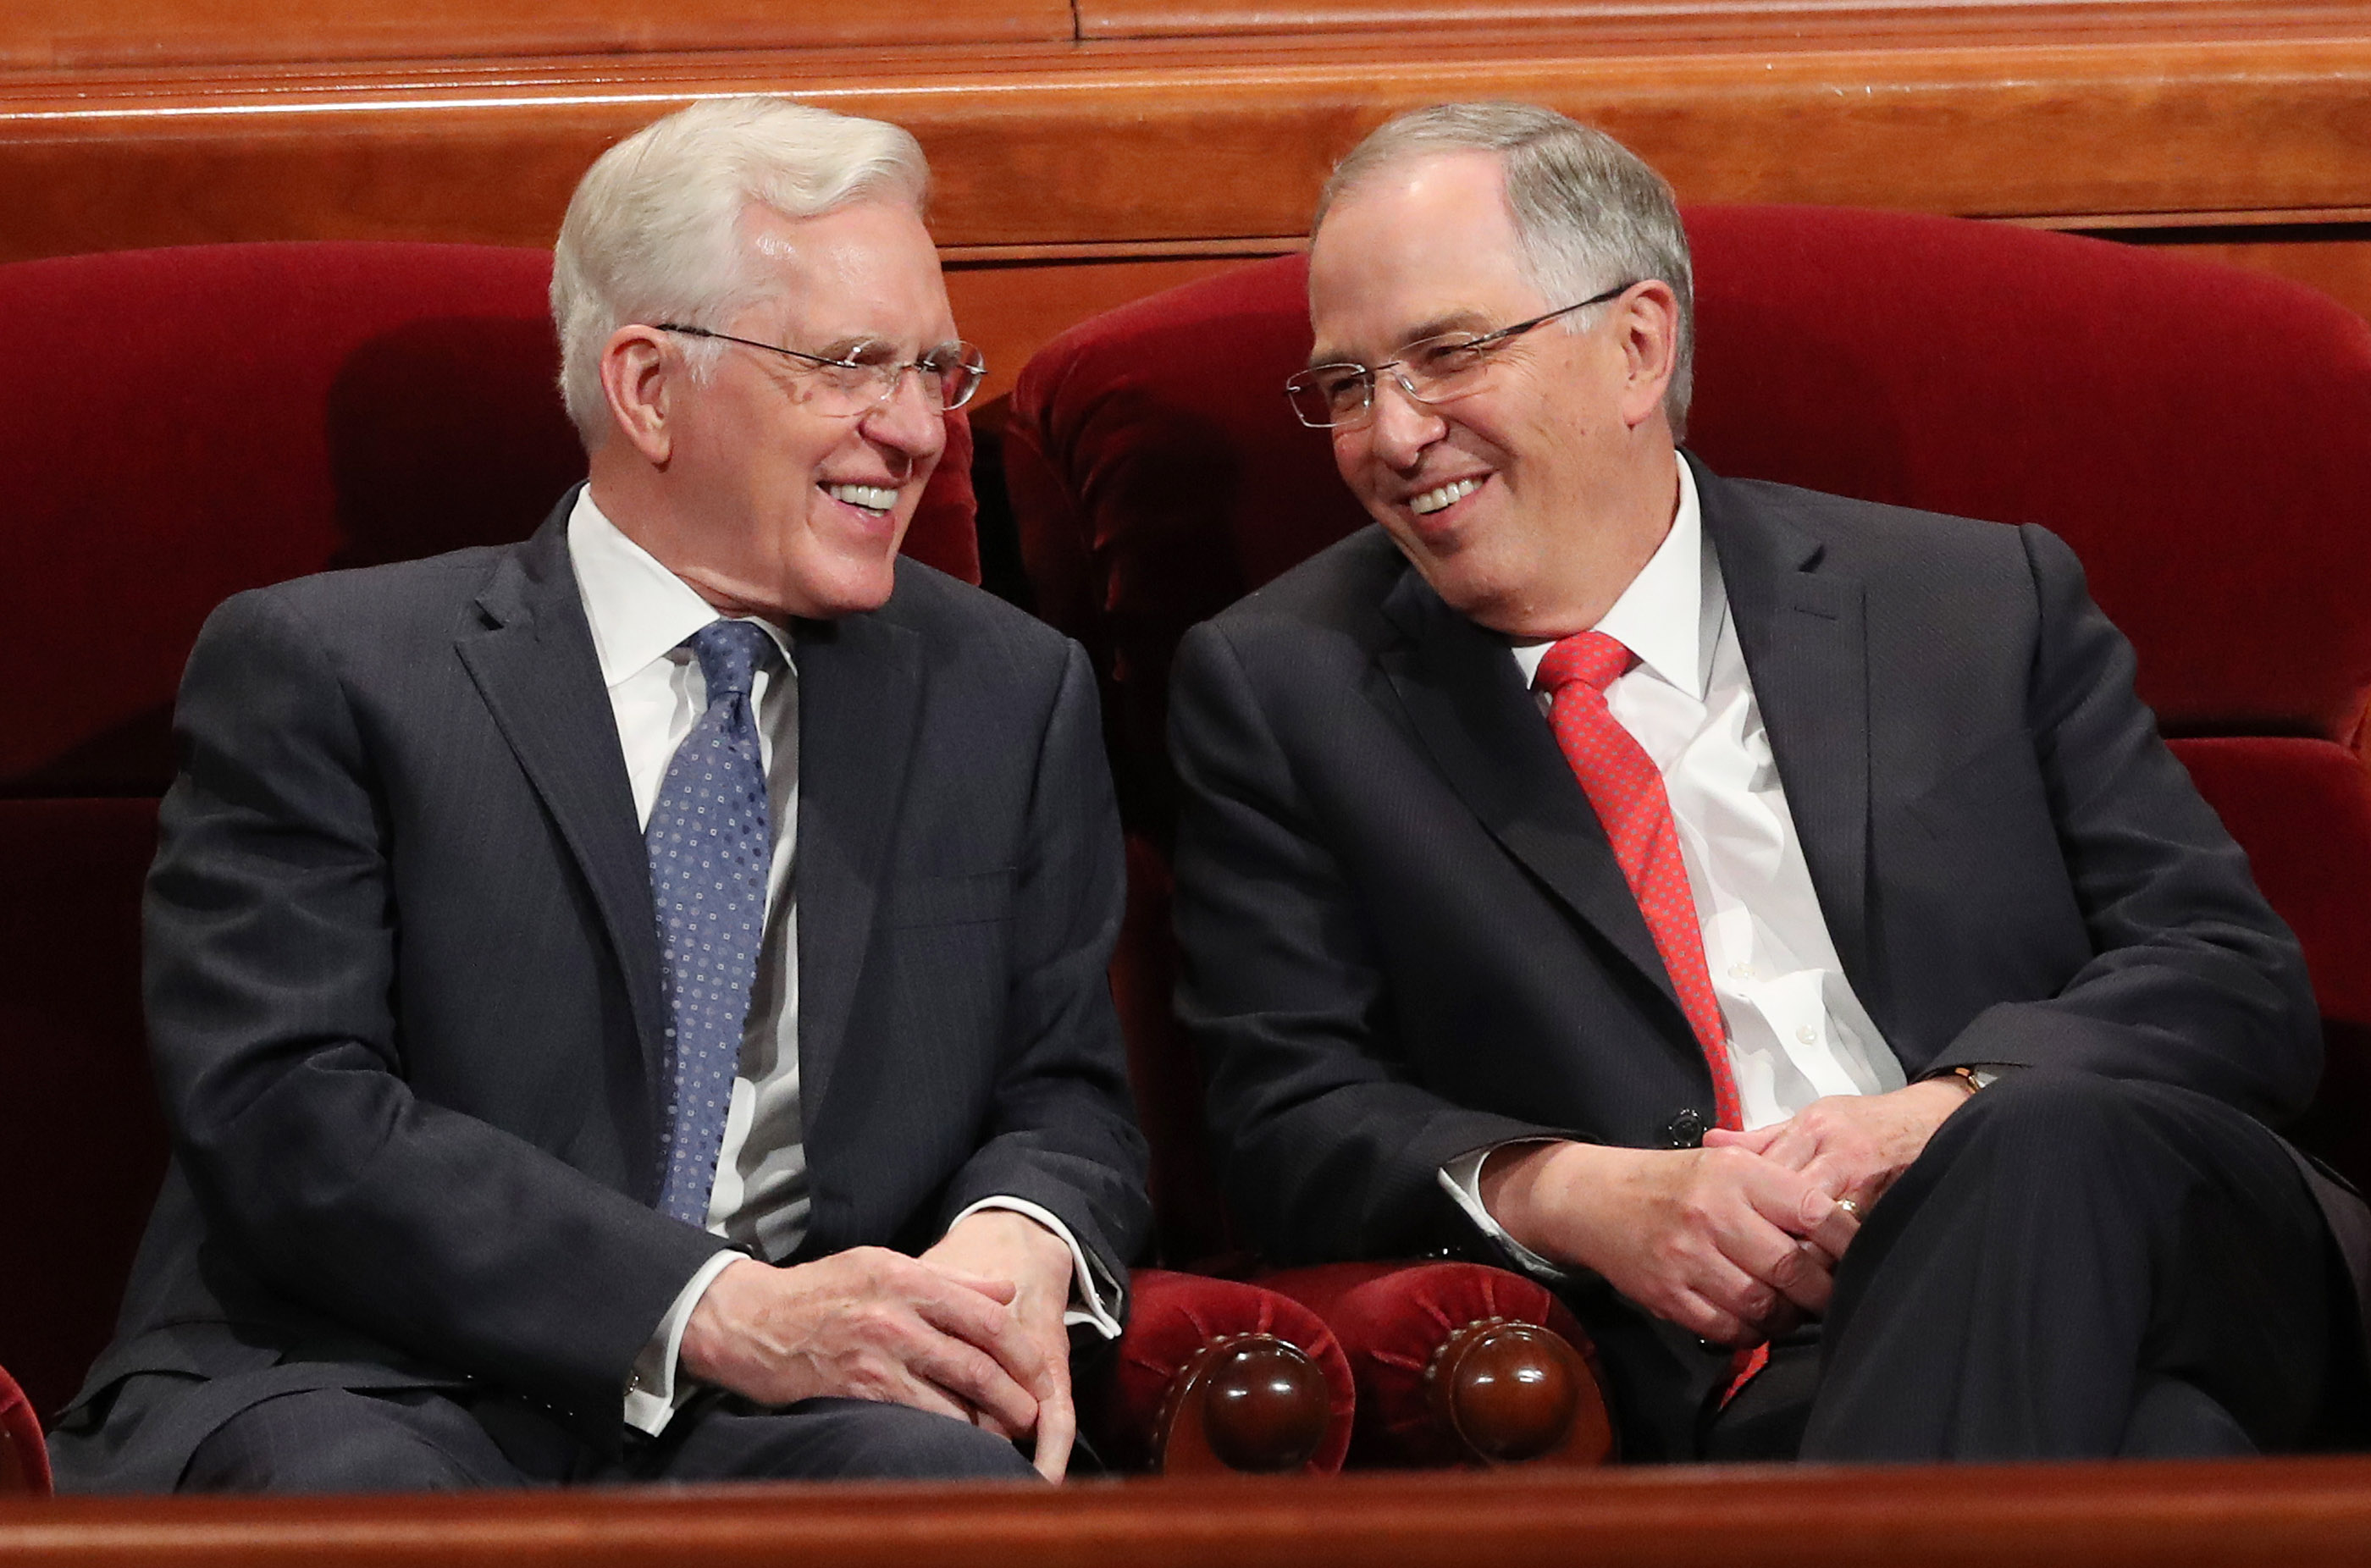 Elder D. Todd Christofferson and Elder Neil L. Andersen of the Quorum of the Twelve Apostles talk prior to the Sunday afternoon session of the 188th Semiannual General Conference of The Church of Jesus Christ of Latter-day Saints in the Conference Center in Salt Lake City on Sunday, Oct. 7, 2018.